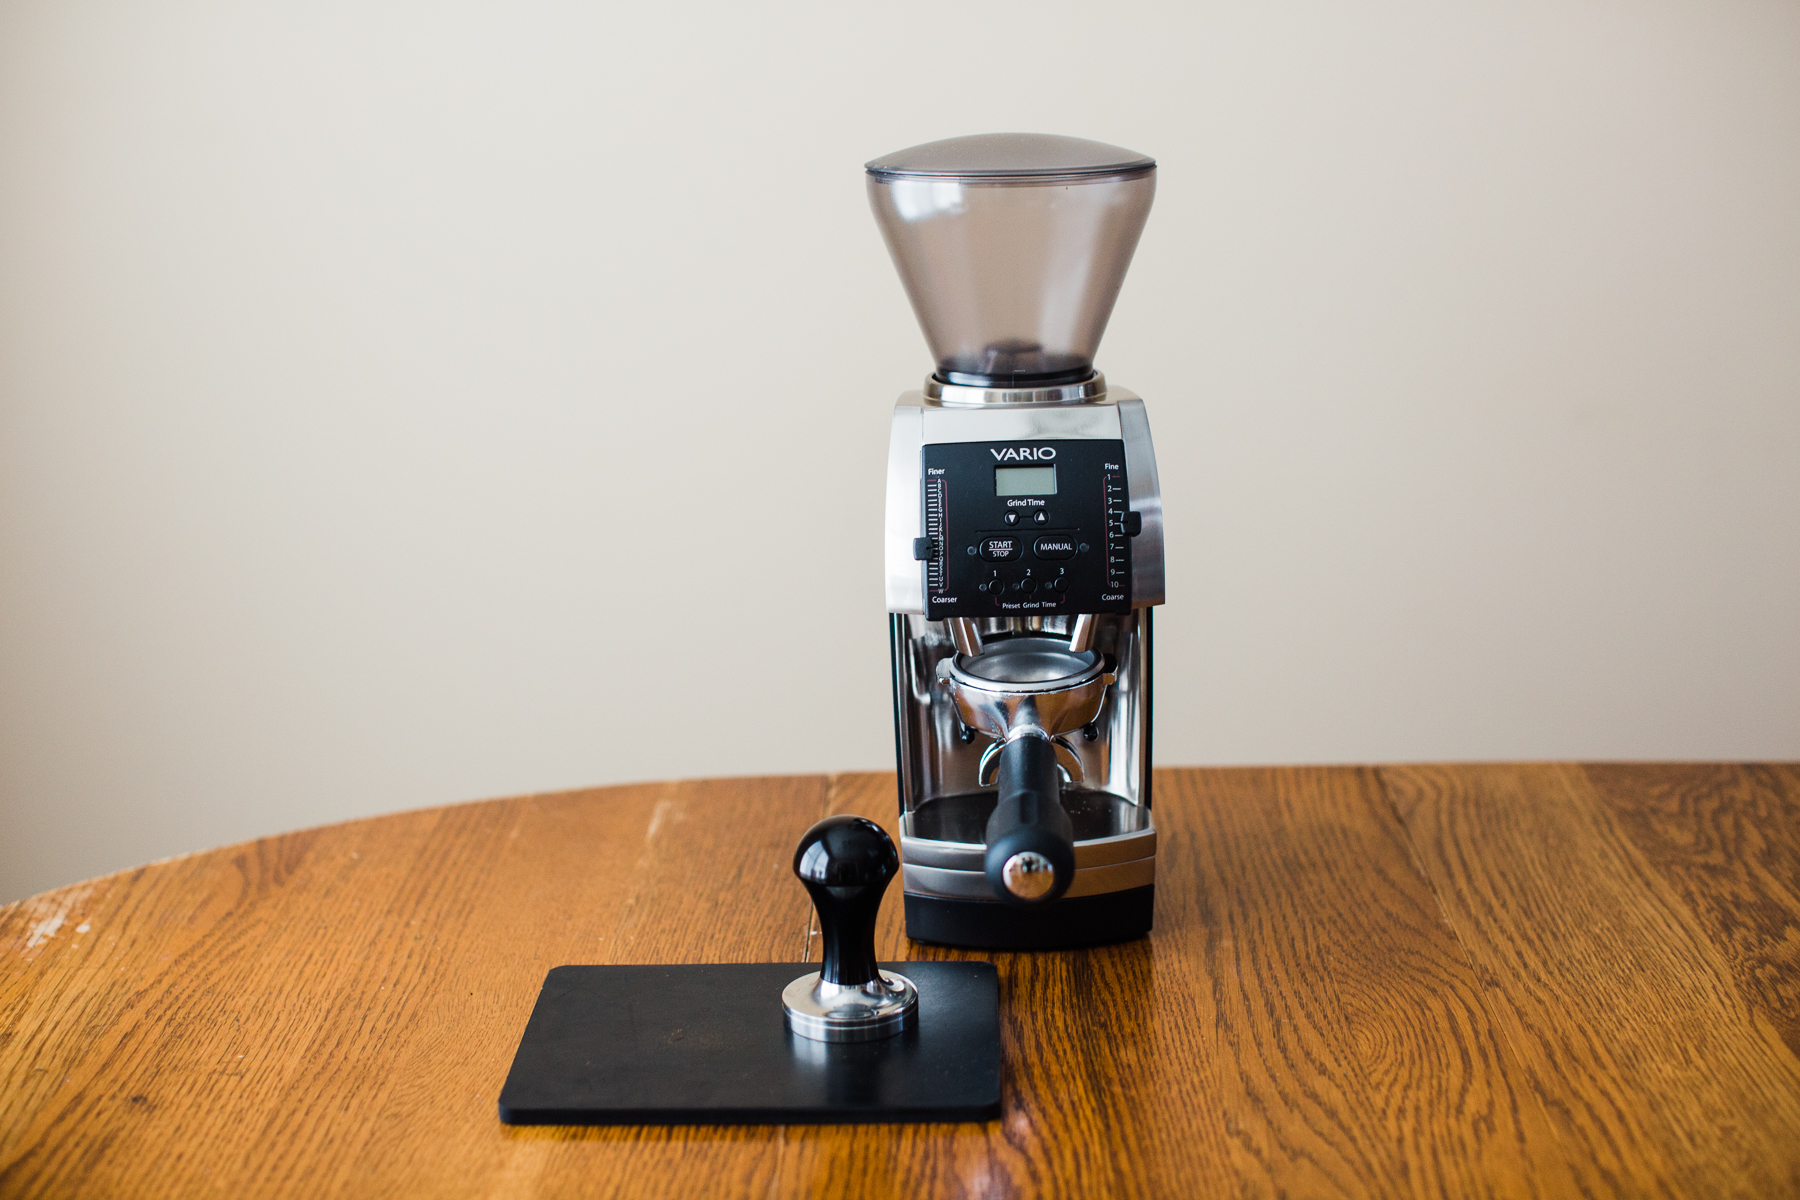 A Baratza Vario holding a portafilter on top of a table with other espresso brewing equipment.